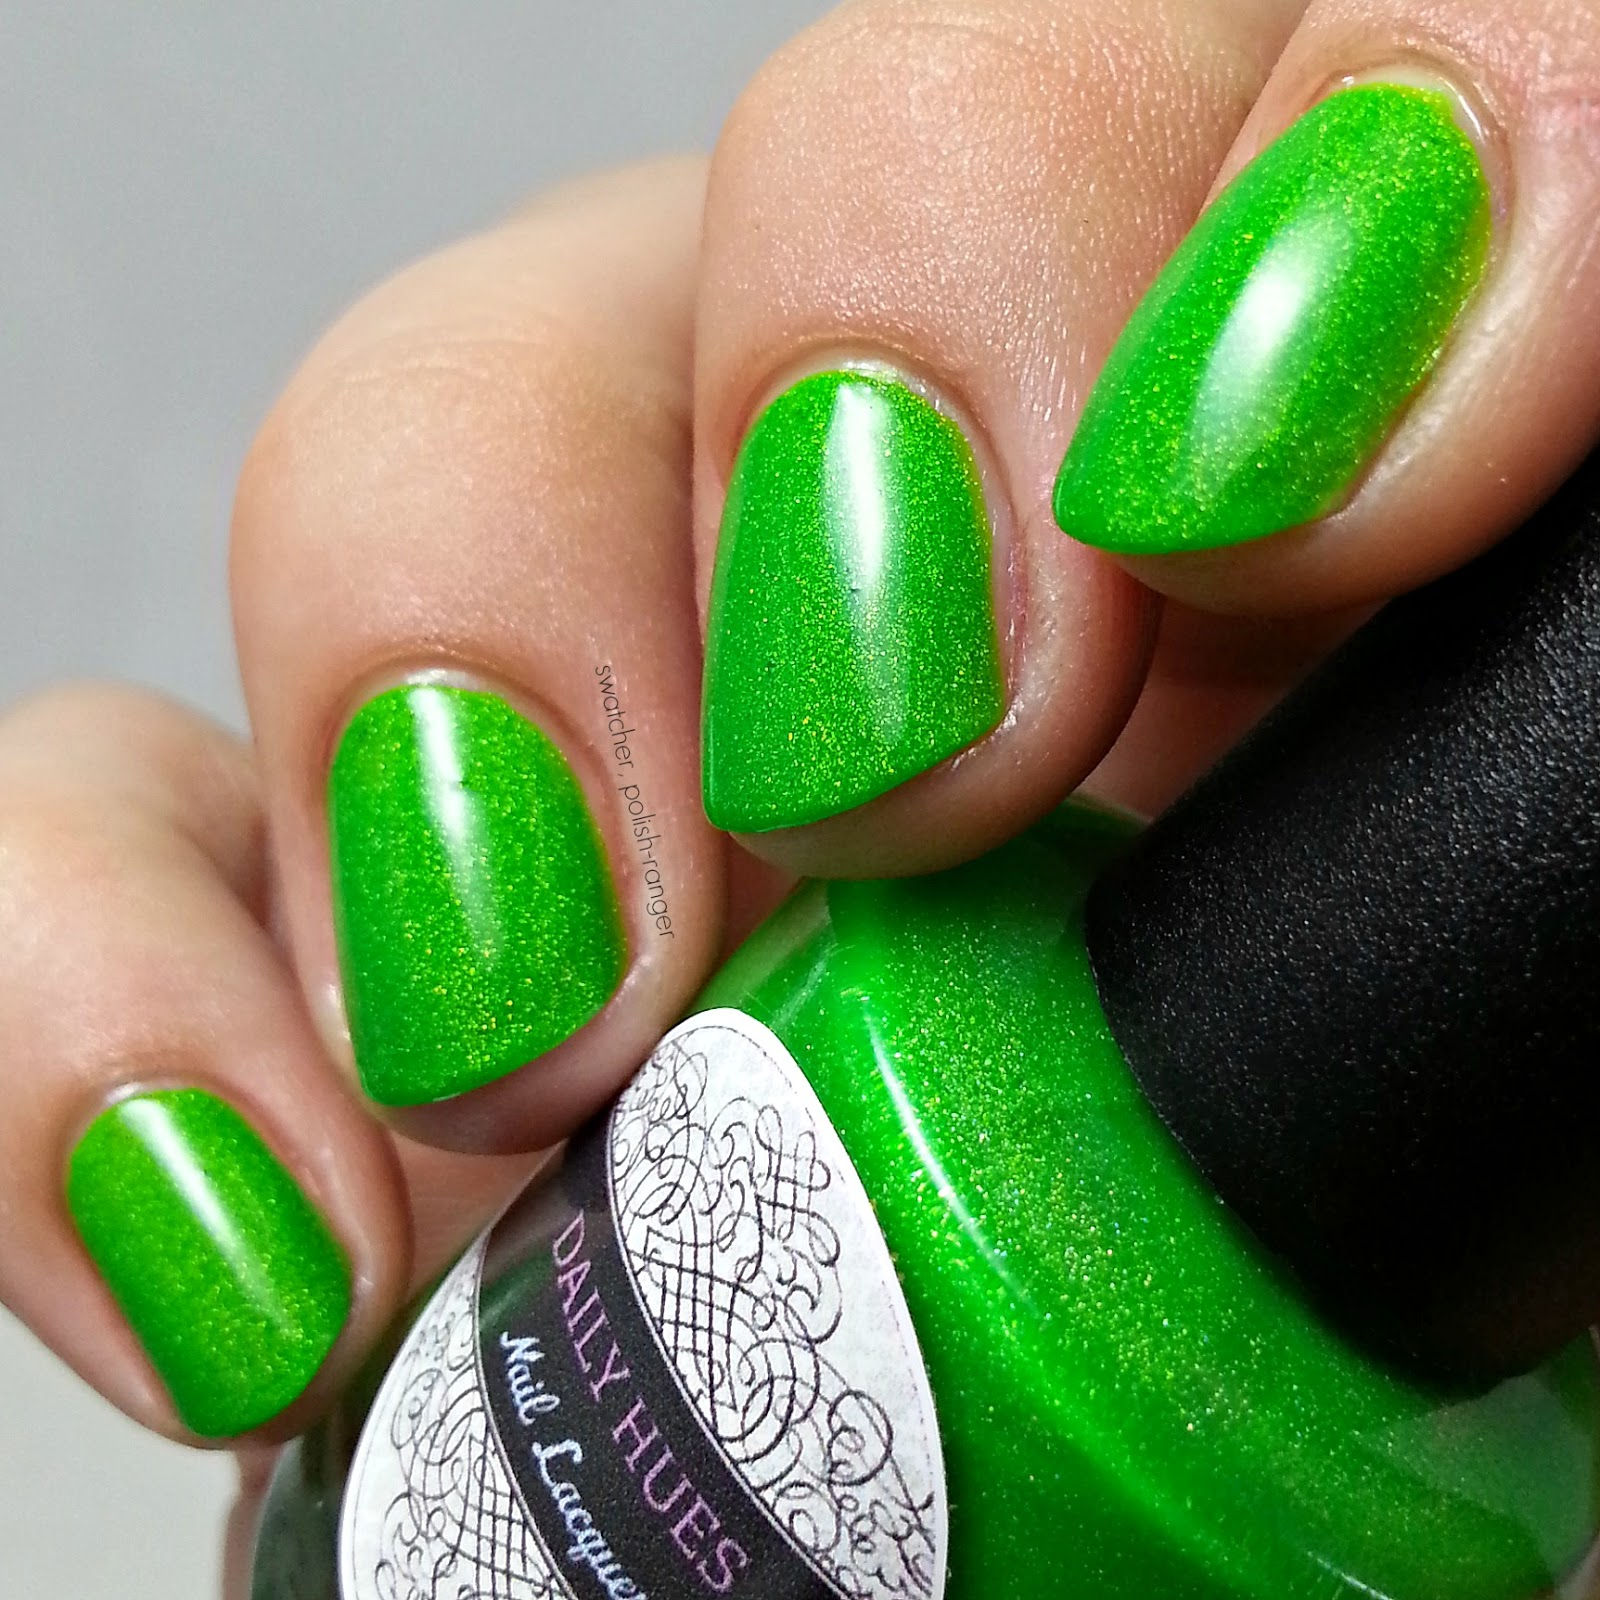 swatcher, polish-ranger | Daily Hues Nail Lacquer Fiona swatch